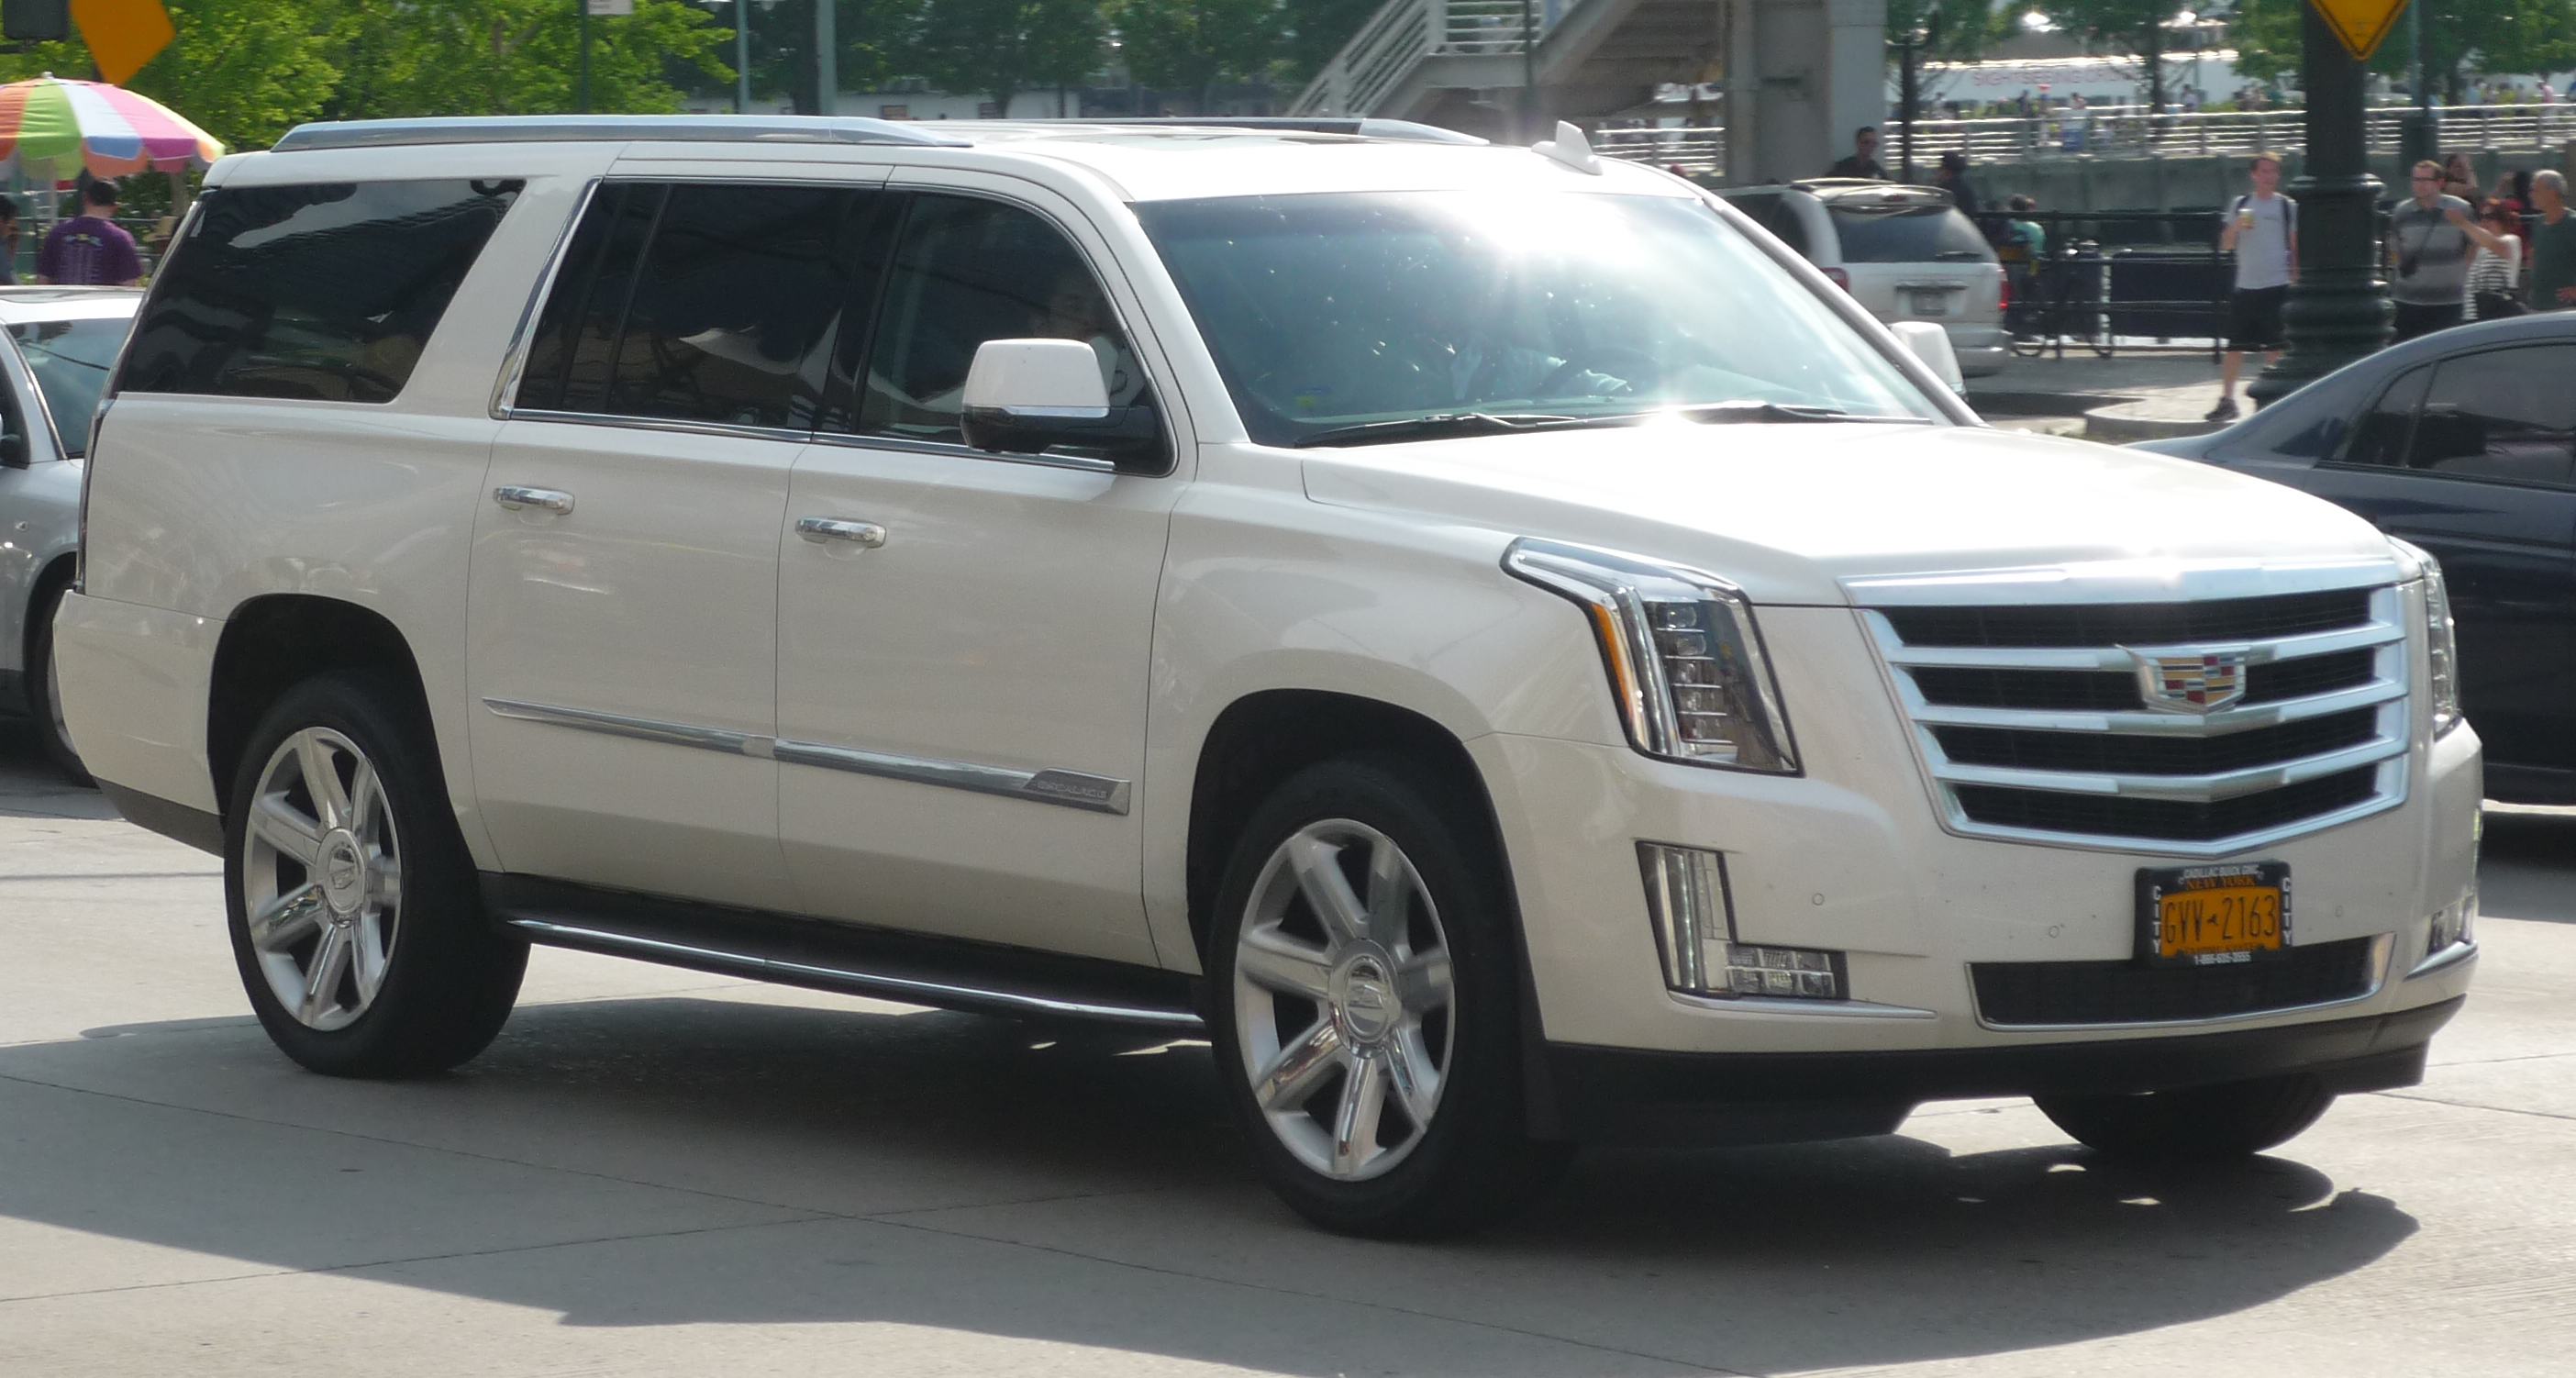 2018 cadillac suv price. unique cadillac 2016 escalade esv sporting the new cadillac crest intended 2018 cadillac suv price